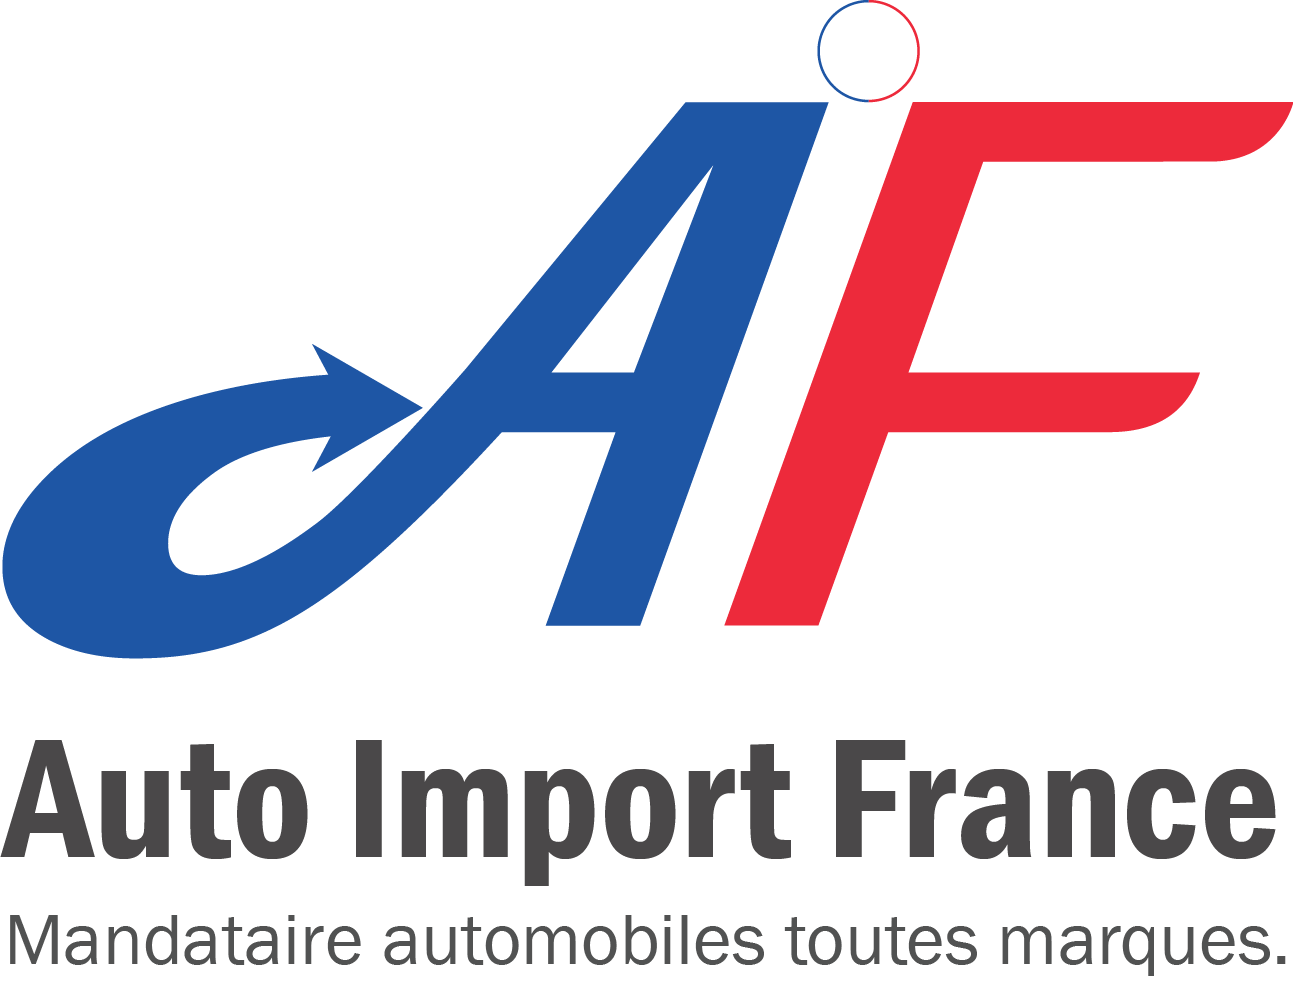 Auto import france